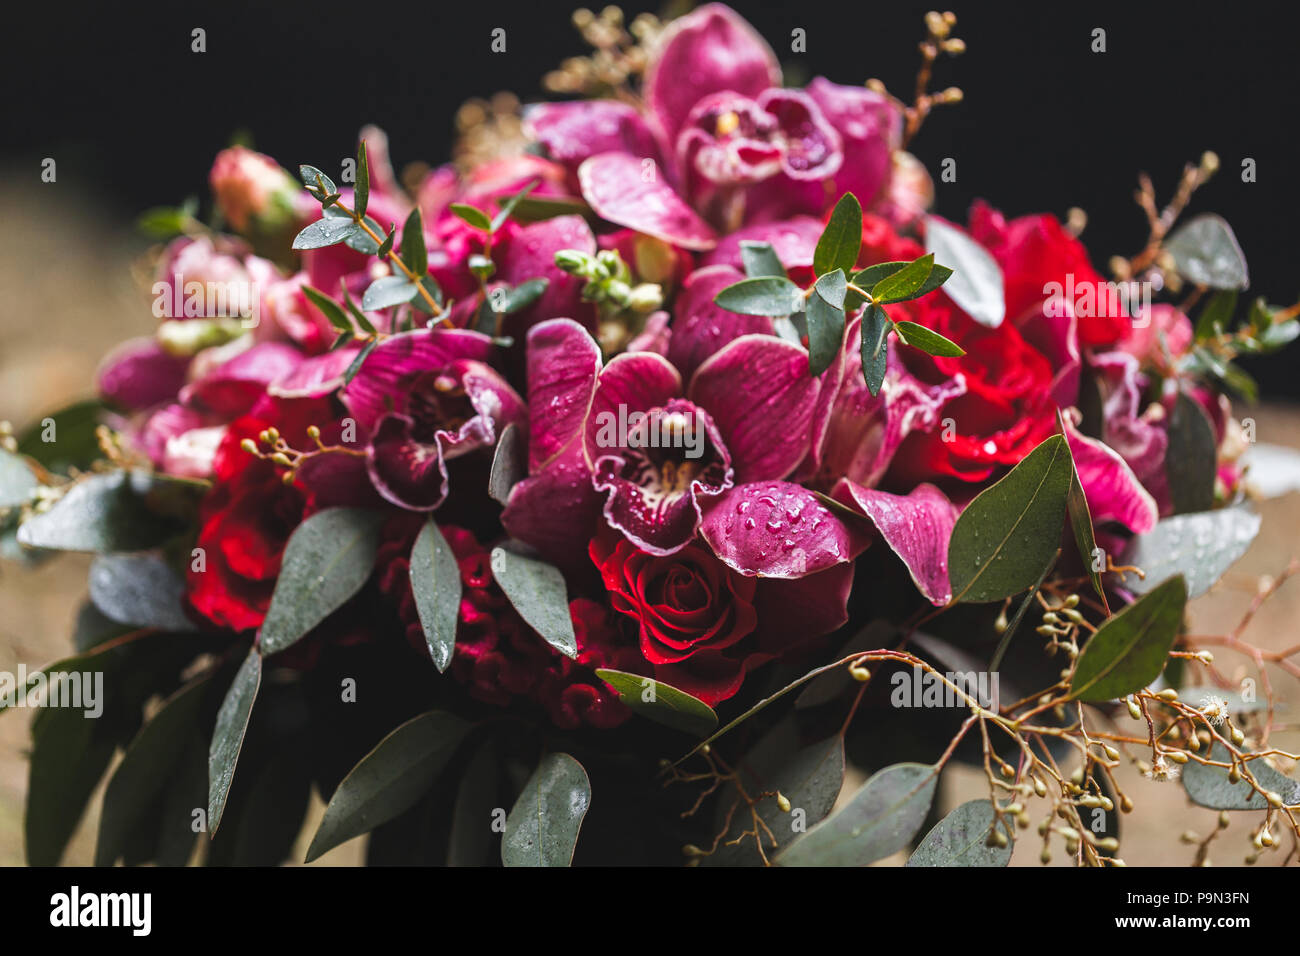 Wedding Flower Decorations With Pink And Red Orchids Green Leaves